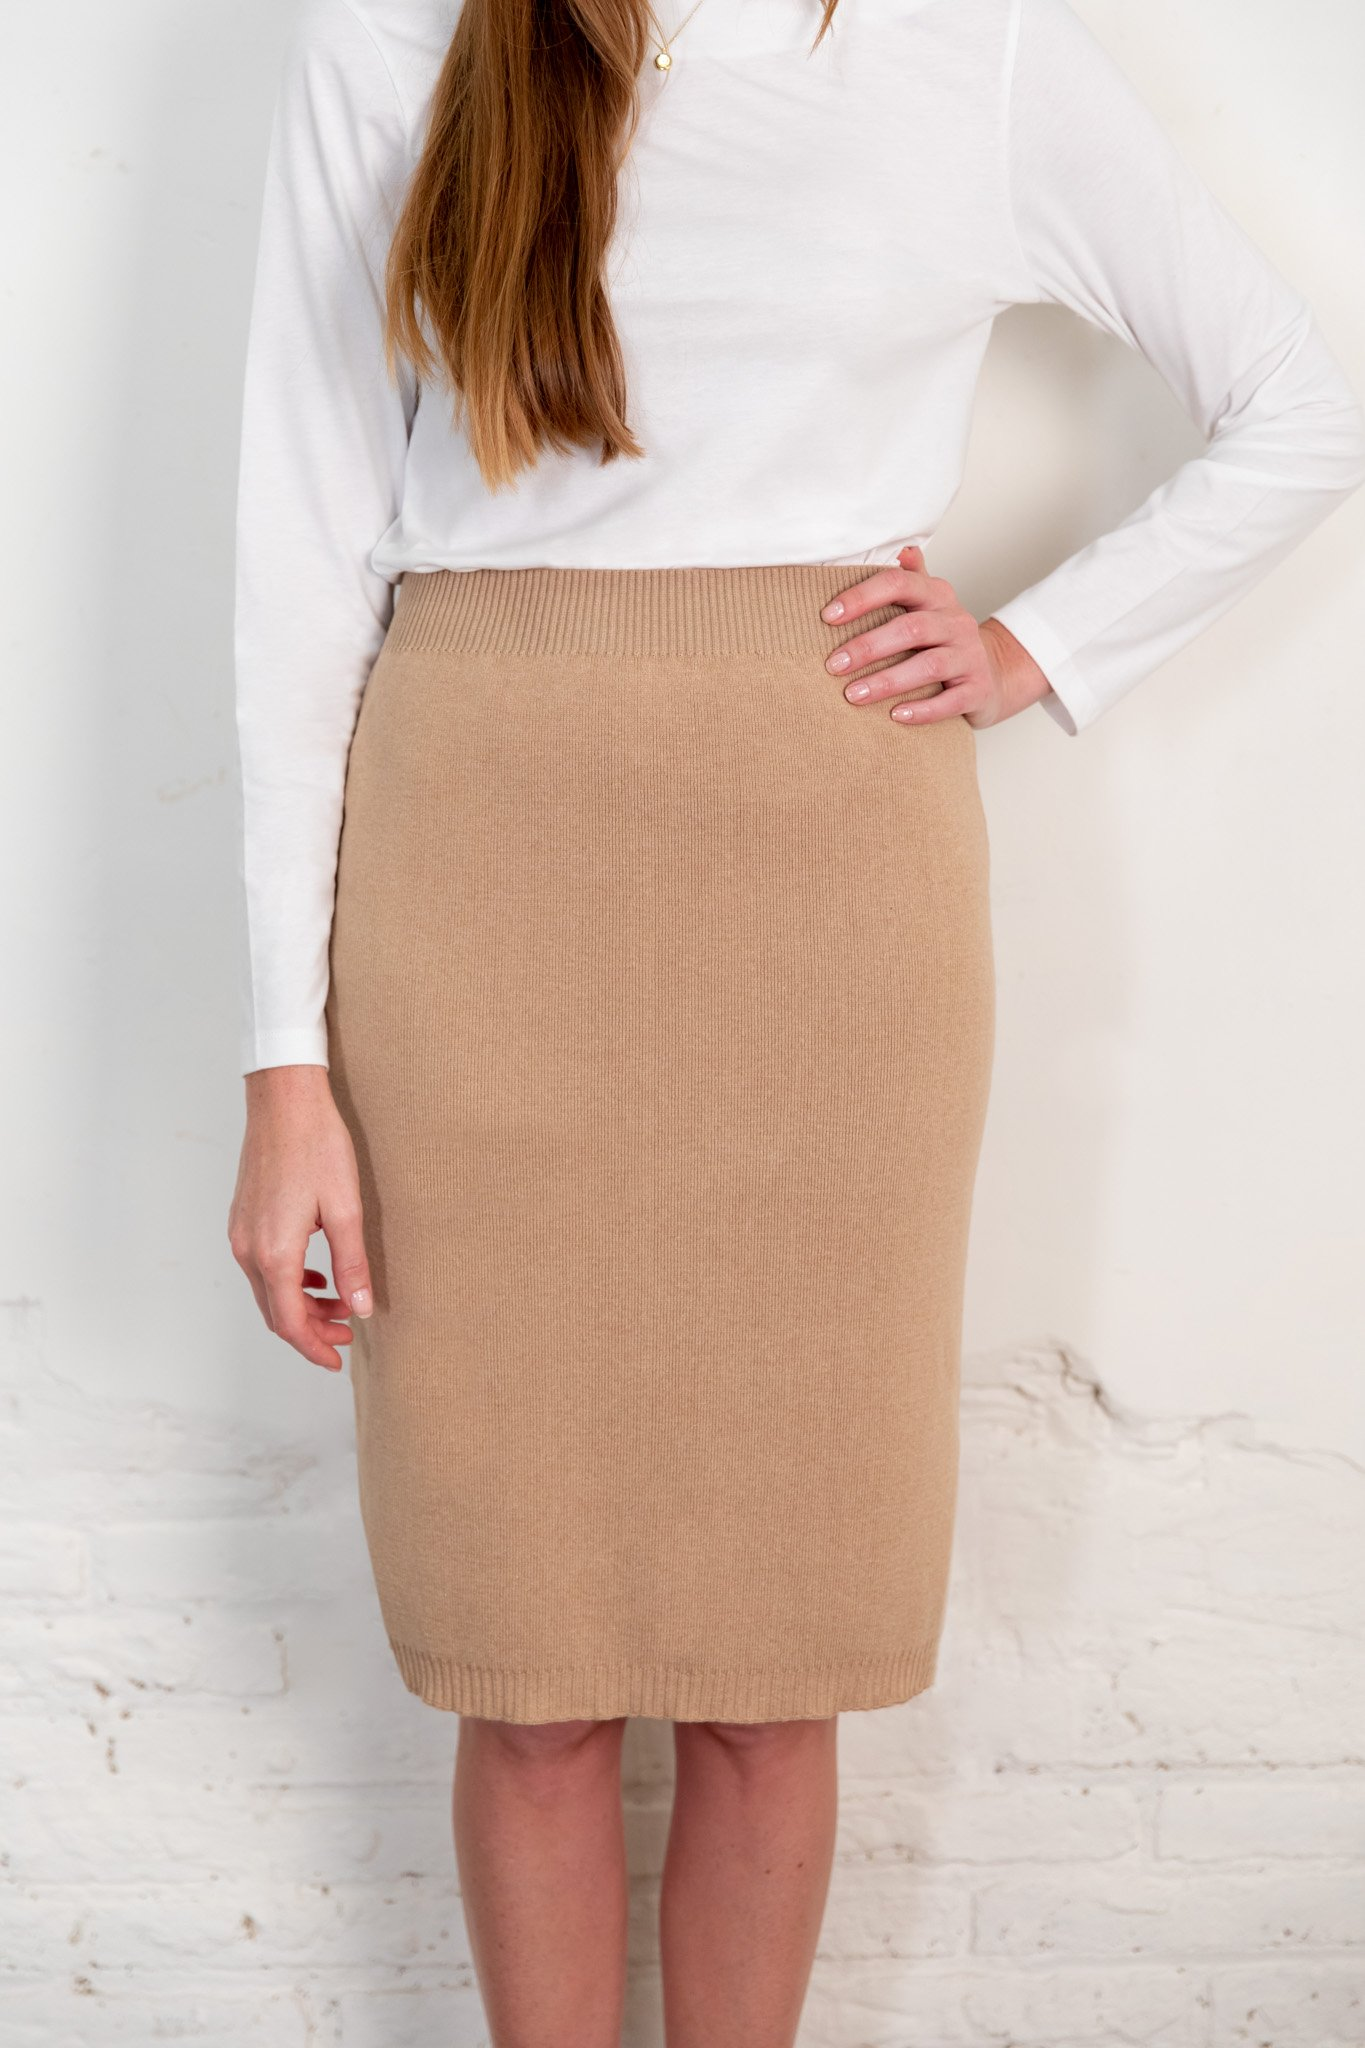 Fapun skirt brown from The Nordic Leaves